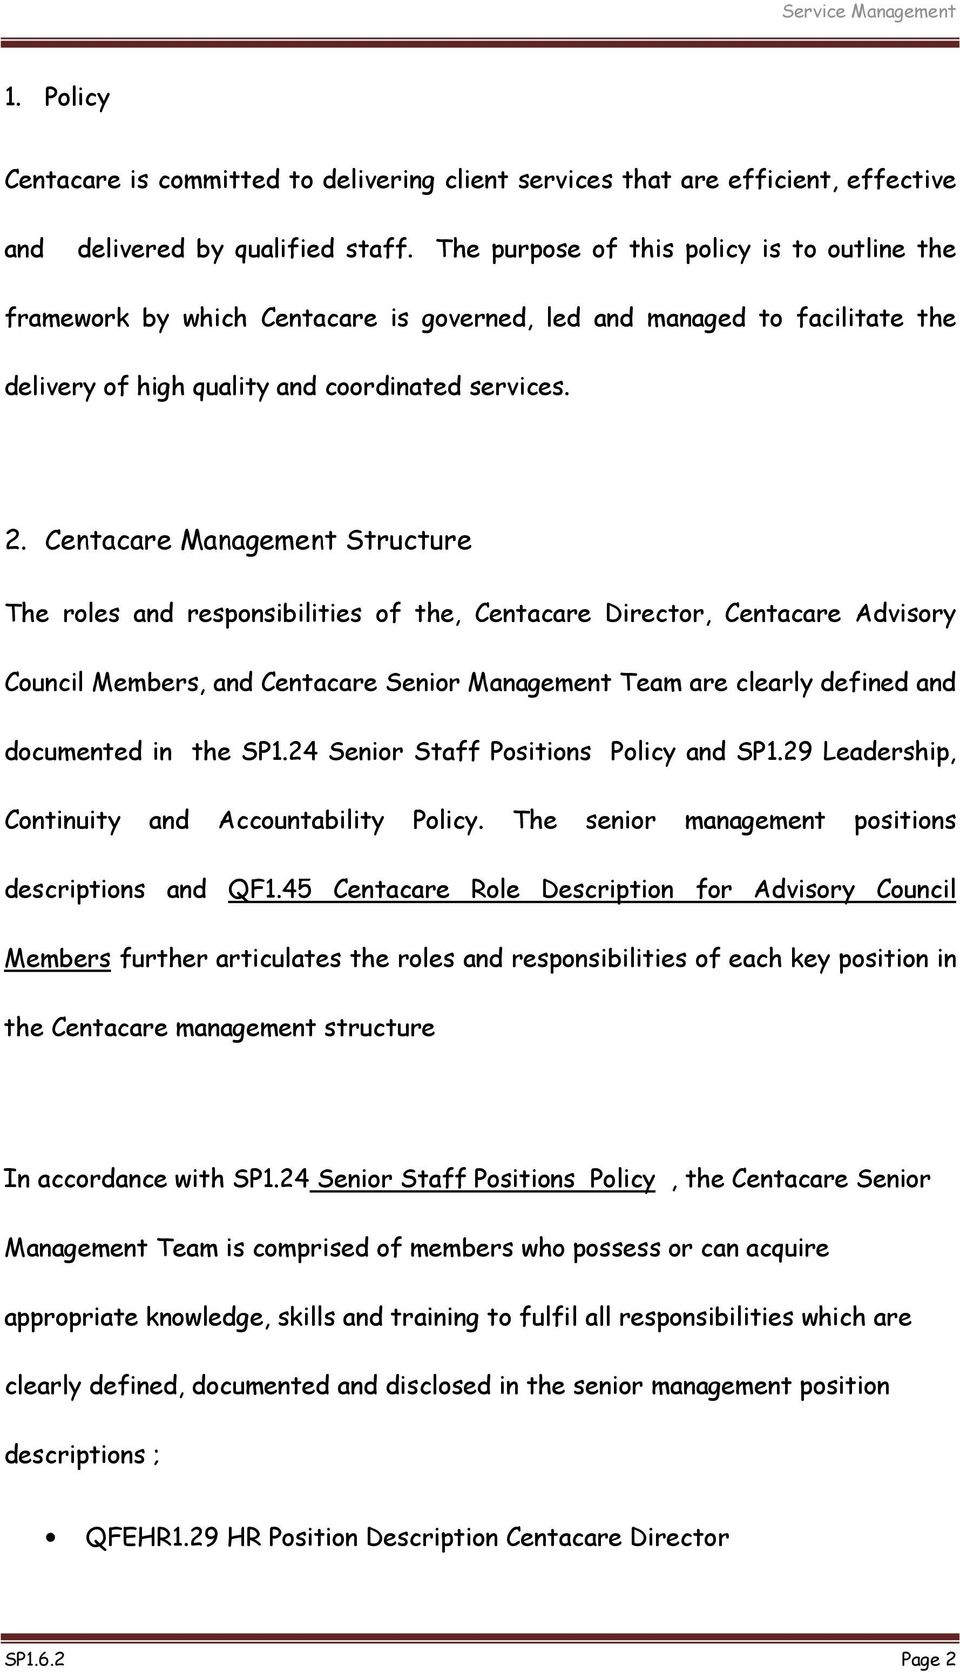 Centacare Management Structure The roles and responsibilities of the, Centacare Director, Centacare Advisory Council Members, and Centacare Senior Management Team are clearly defined and documented